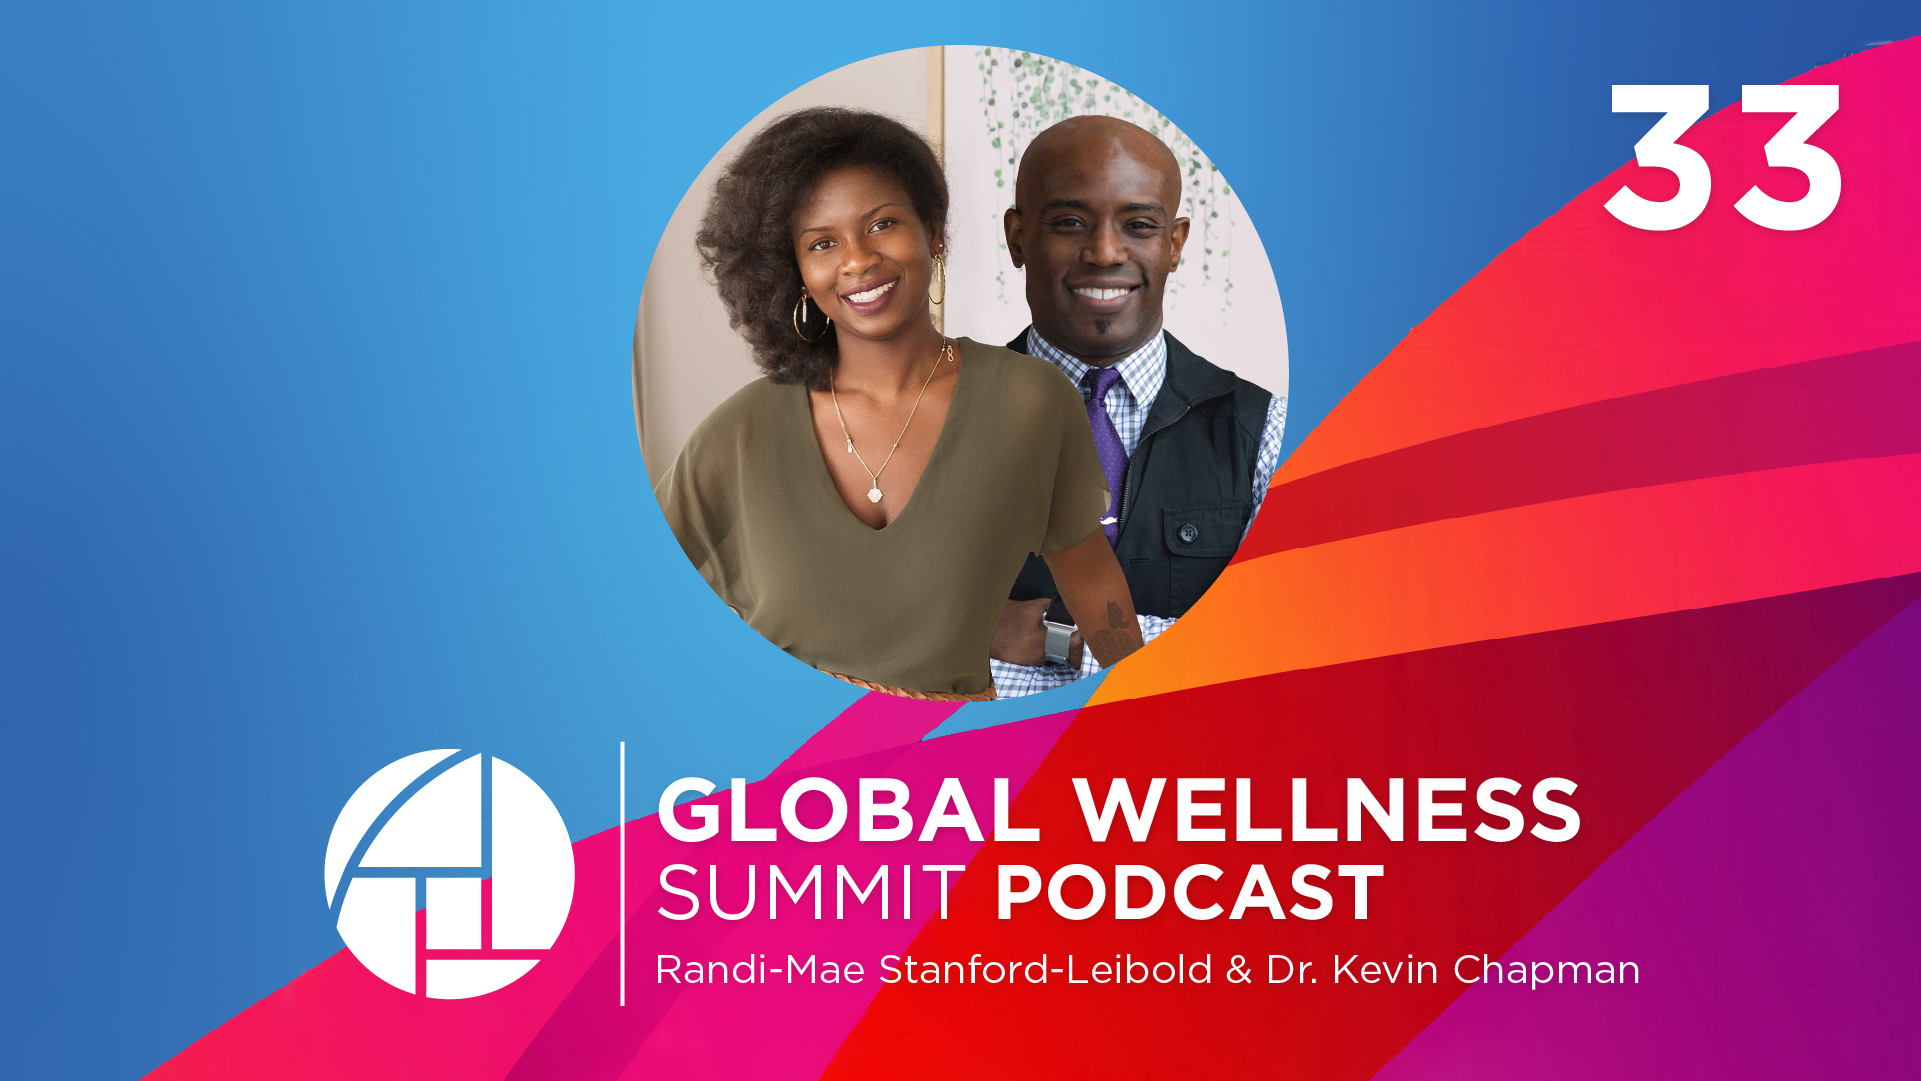 E33. #BlackLivesMatter, COVID-19, & Anxiety: A Guide to Doing Better - with Randi-Mae Stanford-Leibold & Dr. Kevin Chapman